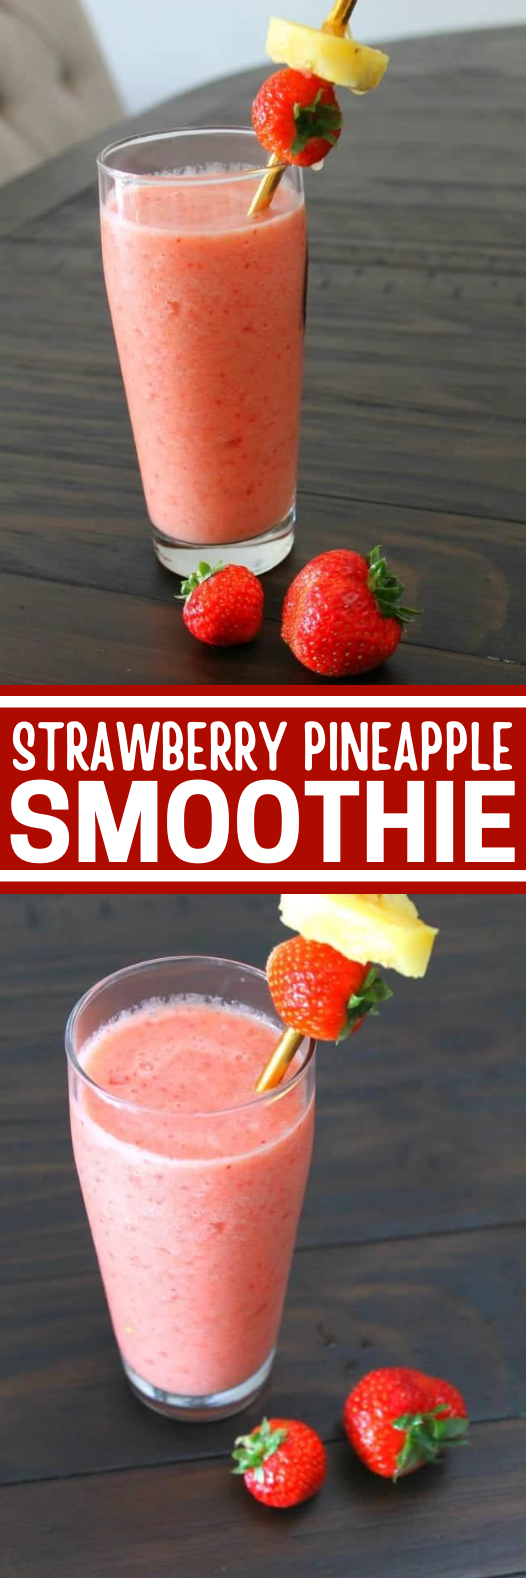 Strawberry Pineapple Smoothie #healthy #drink #breakfast #smoothie #snacks